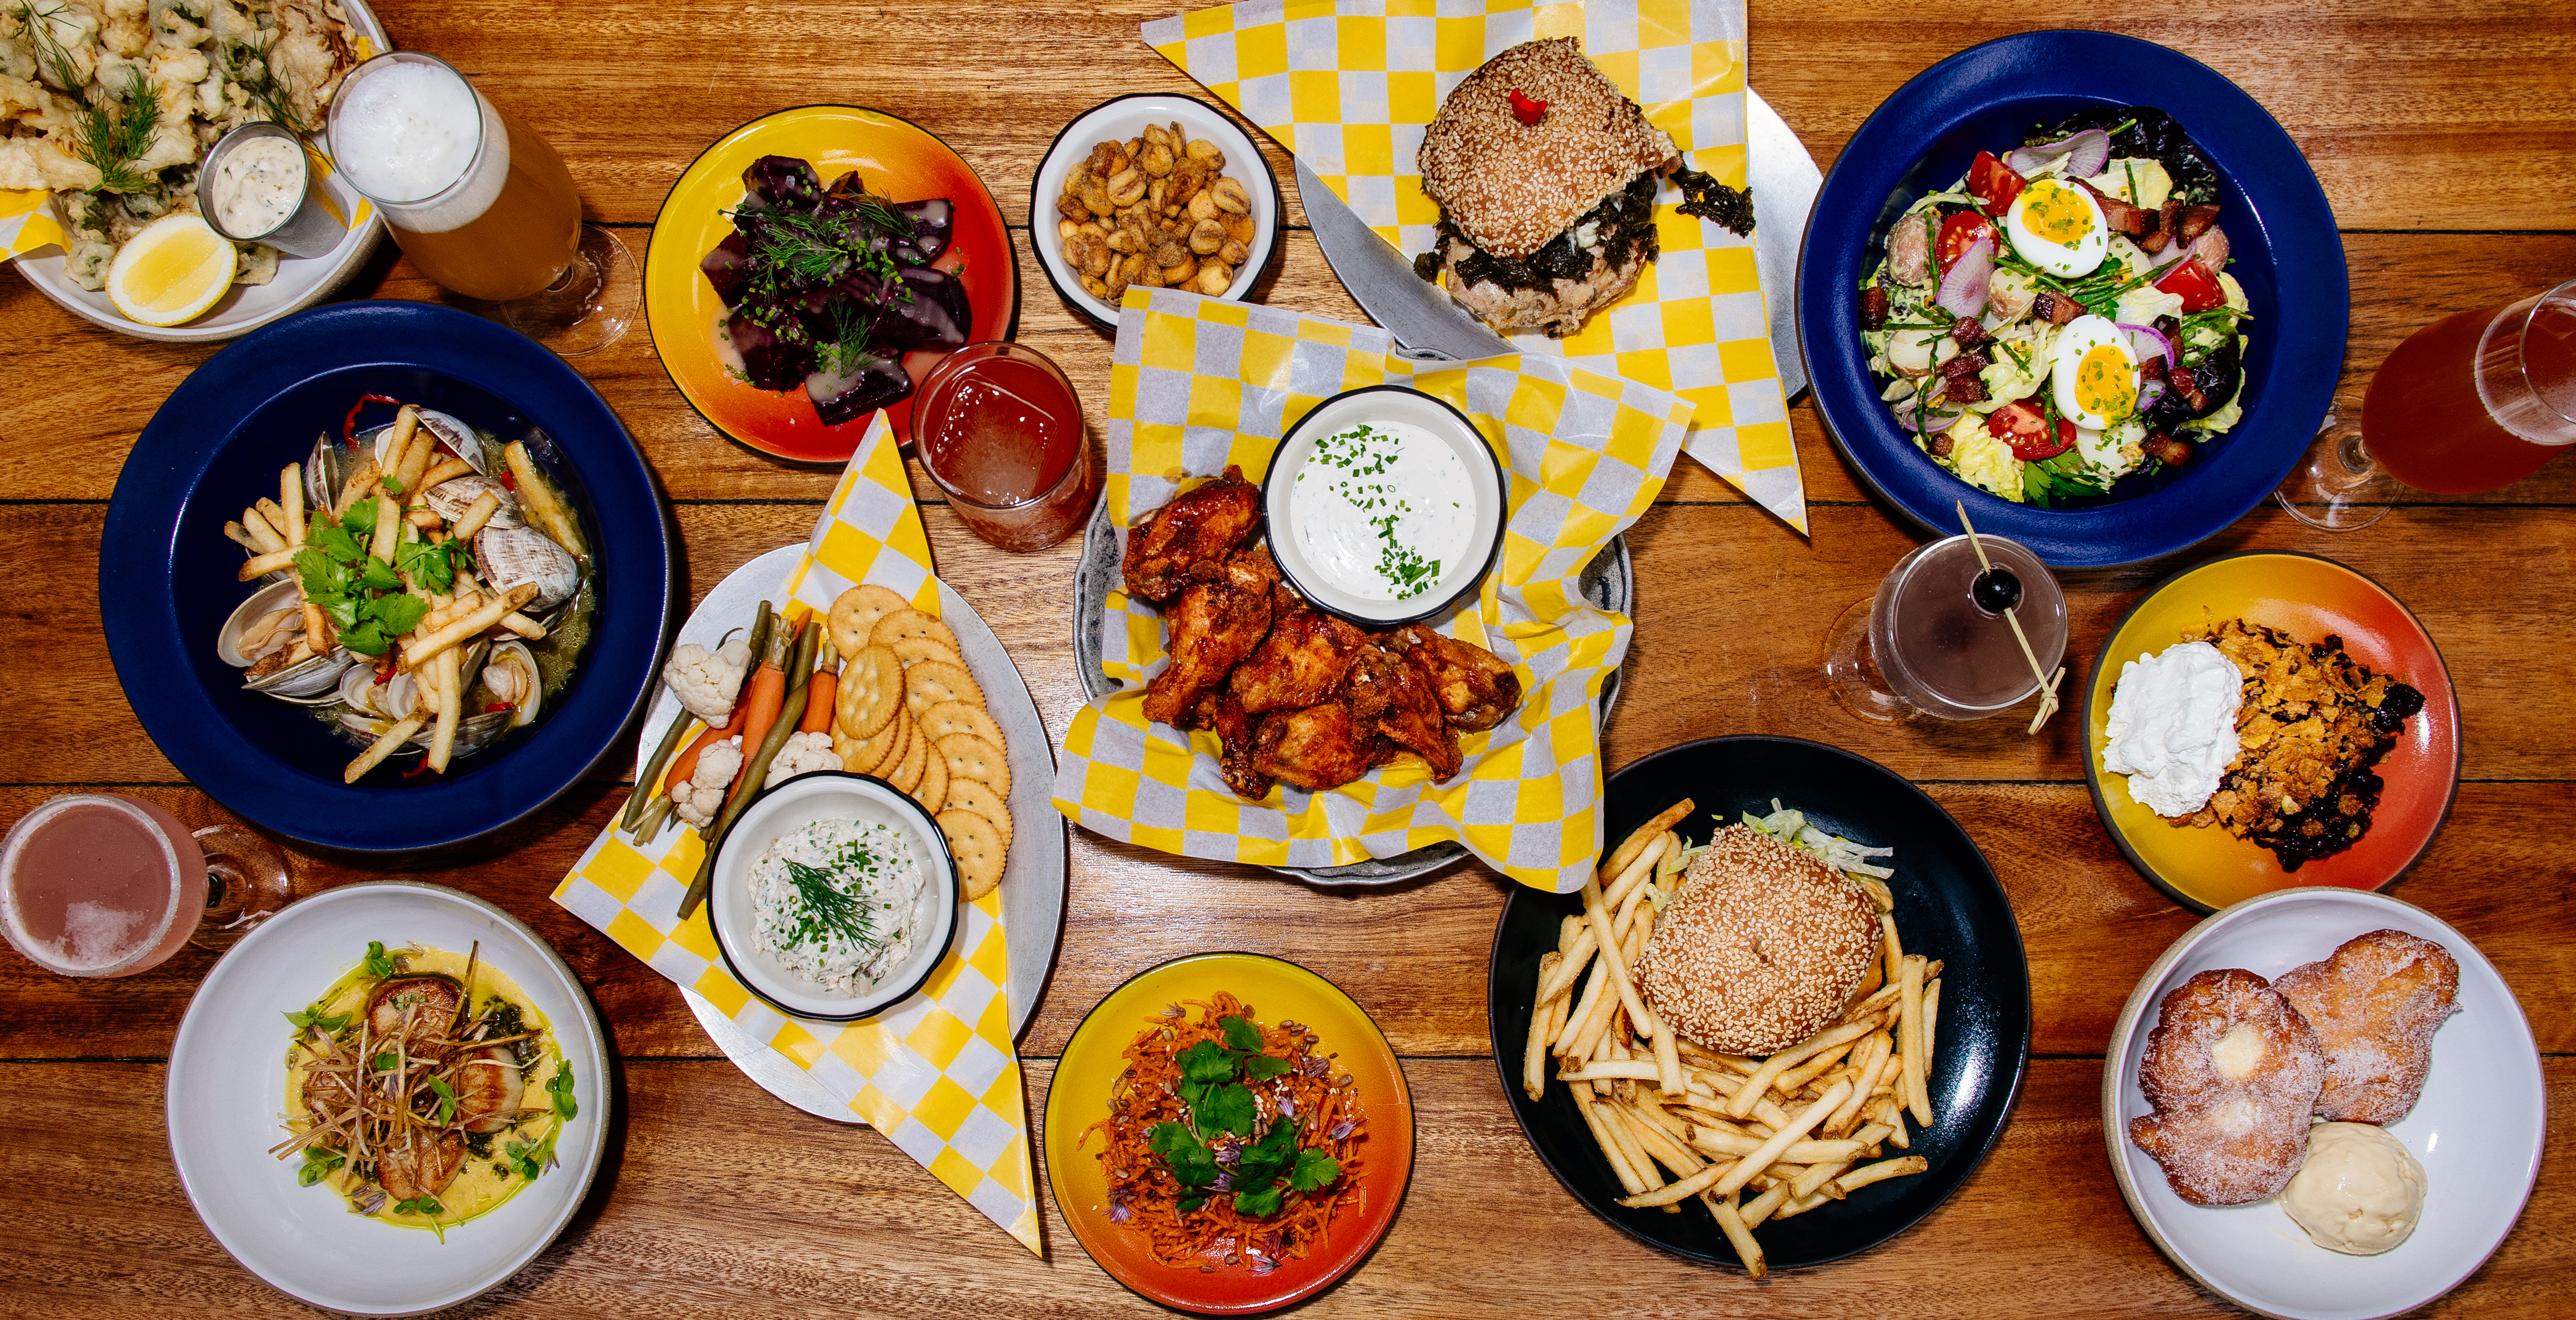 Overhead view of a wooden table full of casual plates of food, including wings, burgers, a blueberry crumble, and more